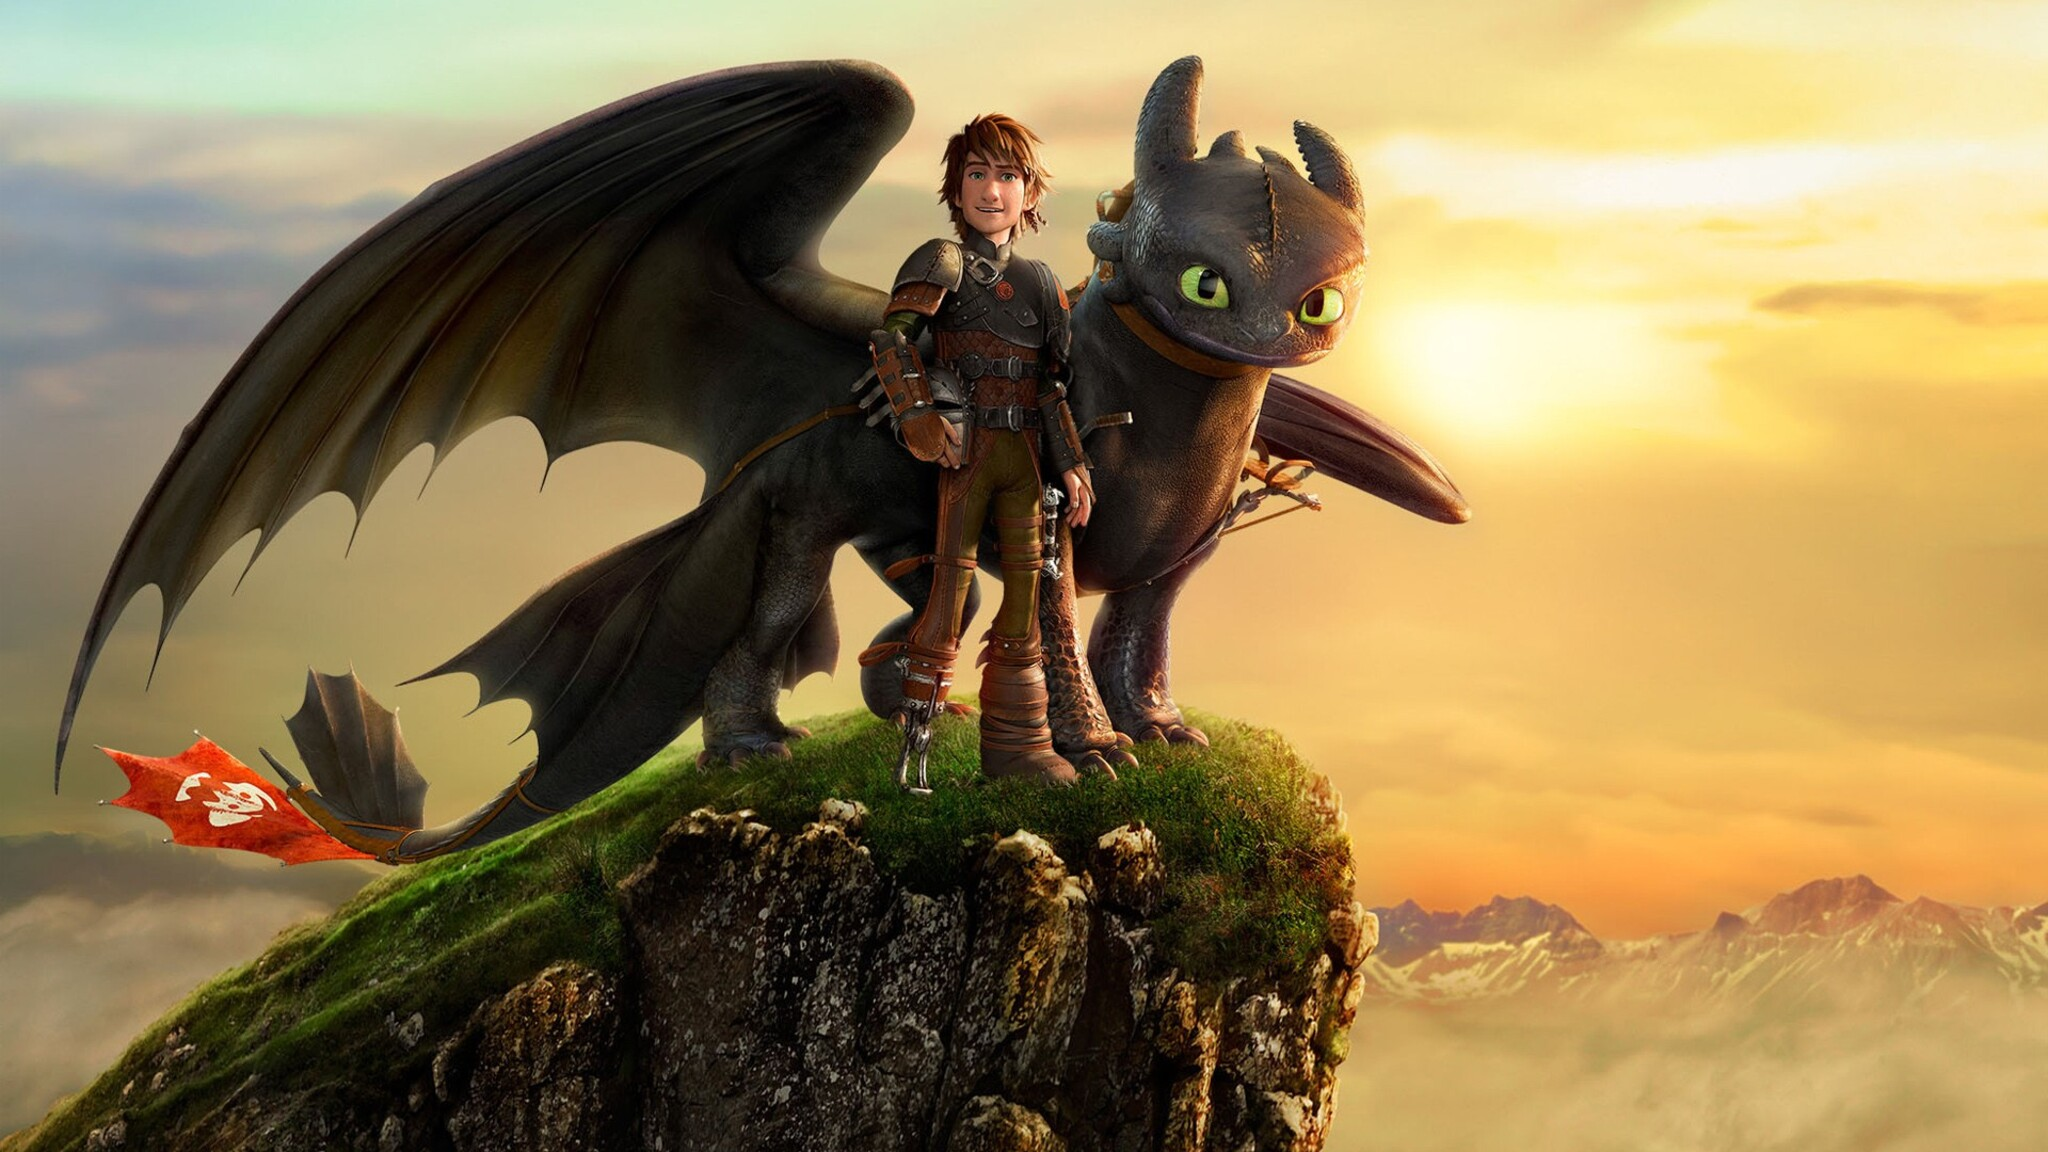 2048x1152 how to train your dragon 3 2048x1152 resolution hd 4k